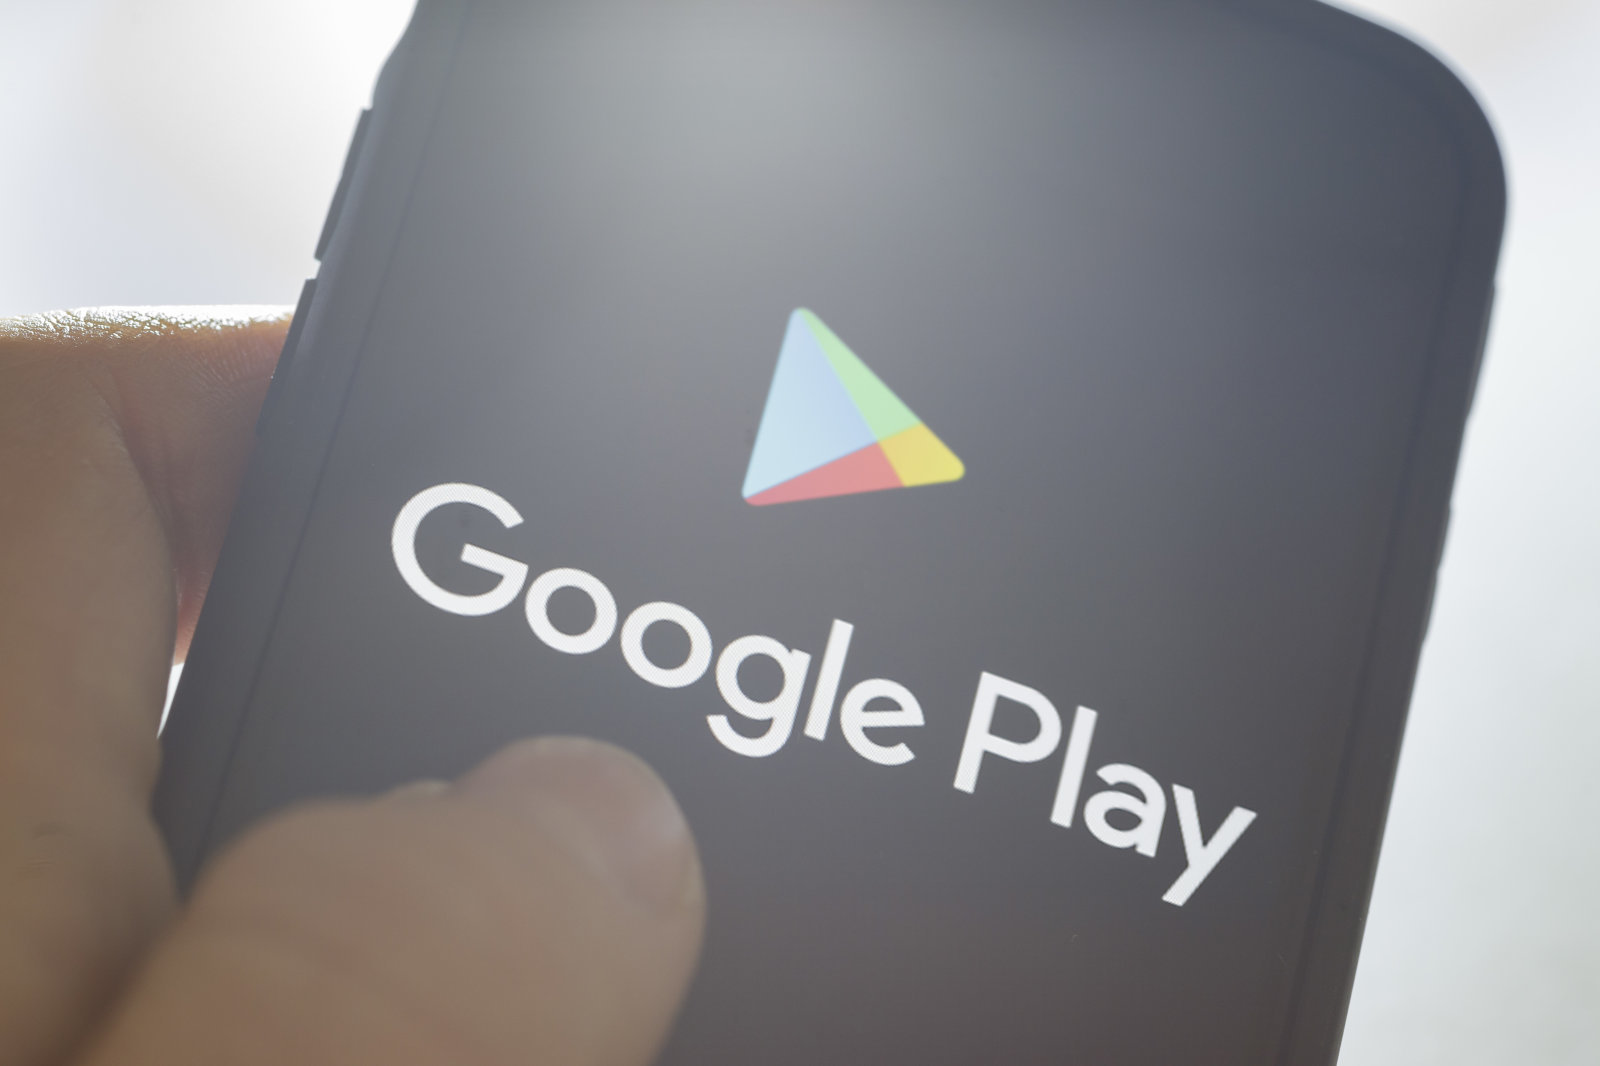 Android apps dealing with unwarranted substances will be banned by Google Play Store